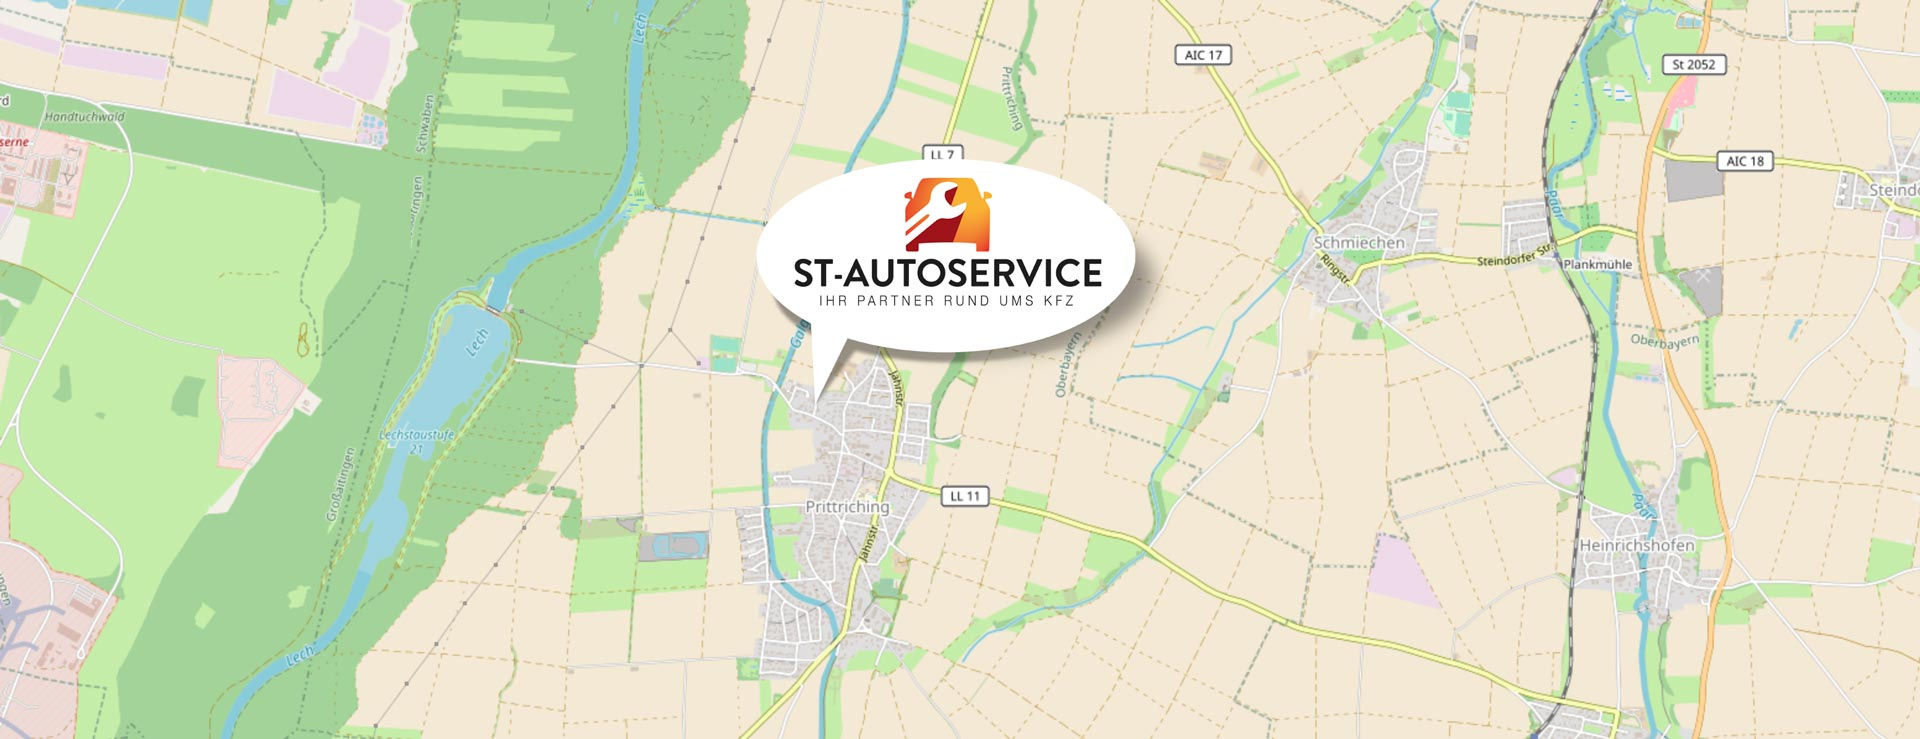 ST-Autoservice Prittriching